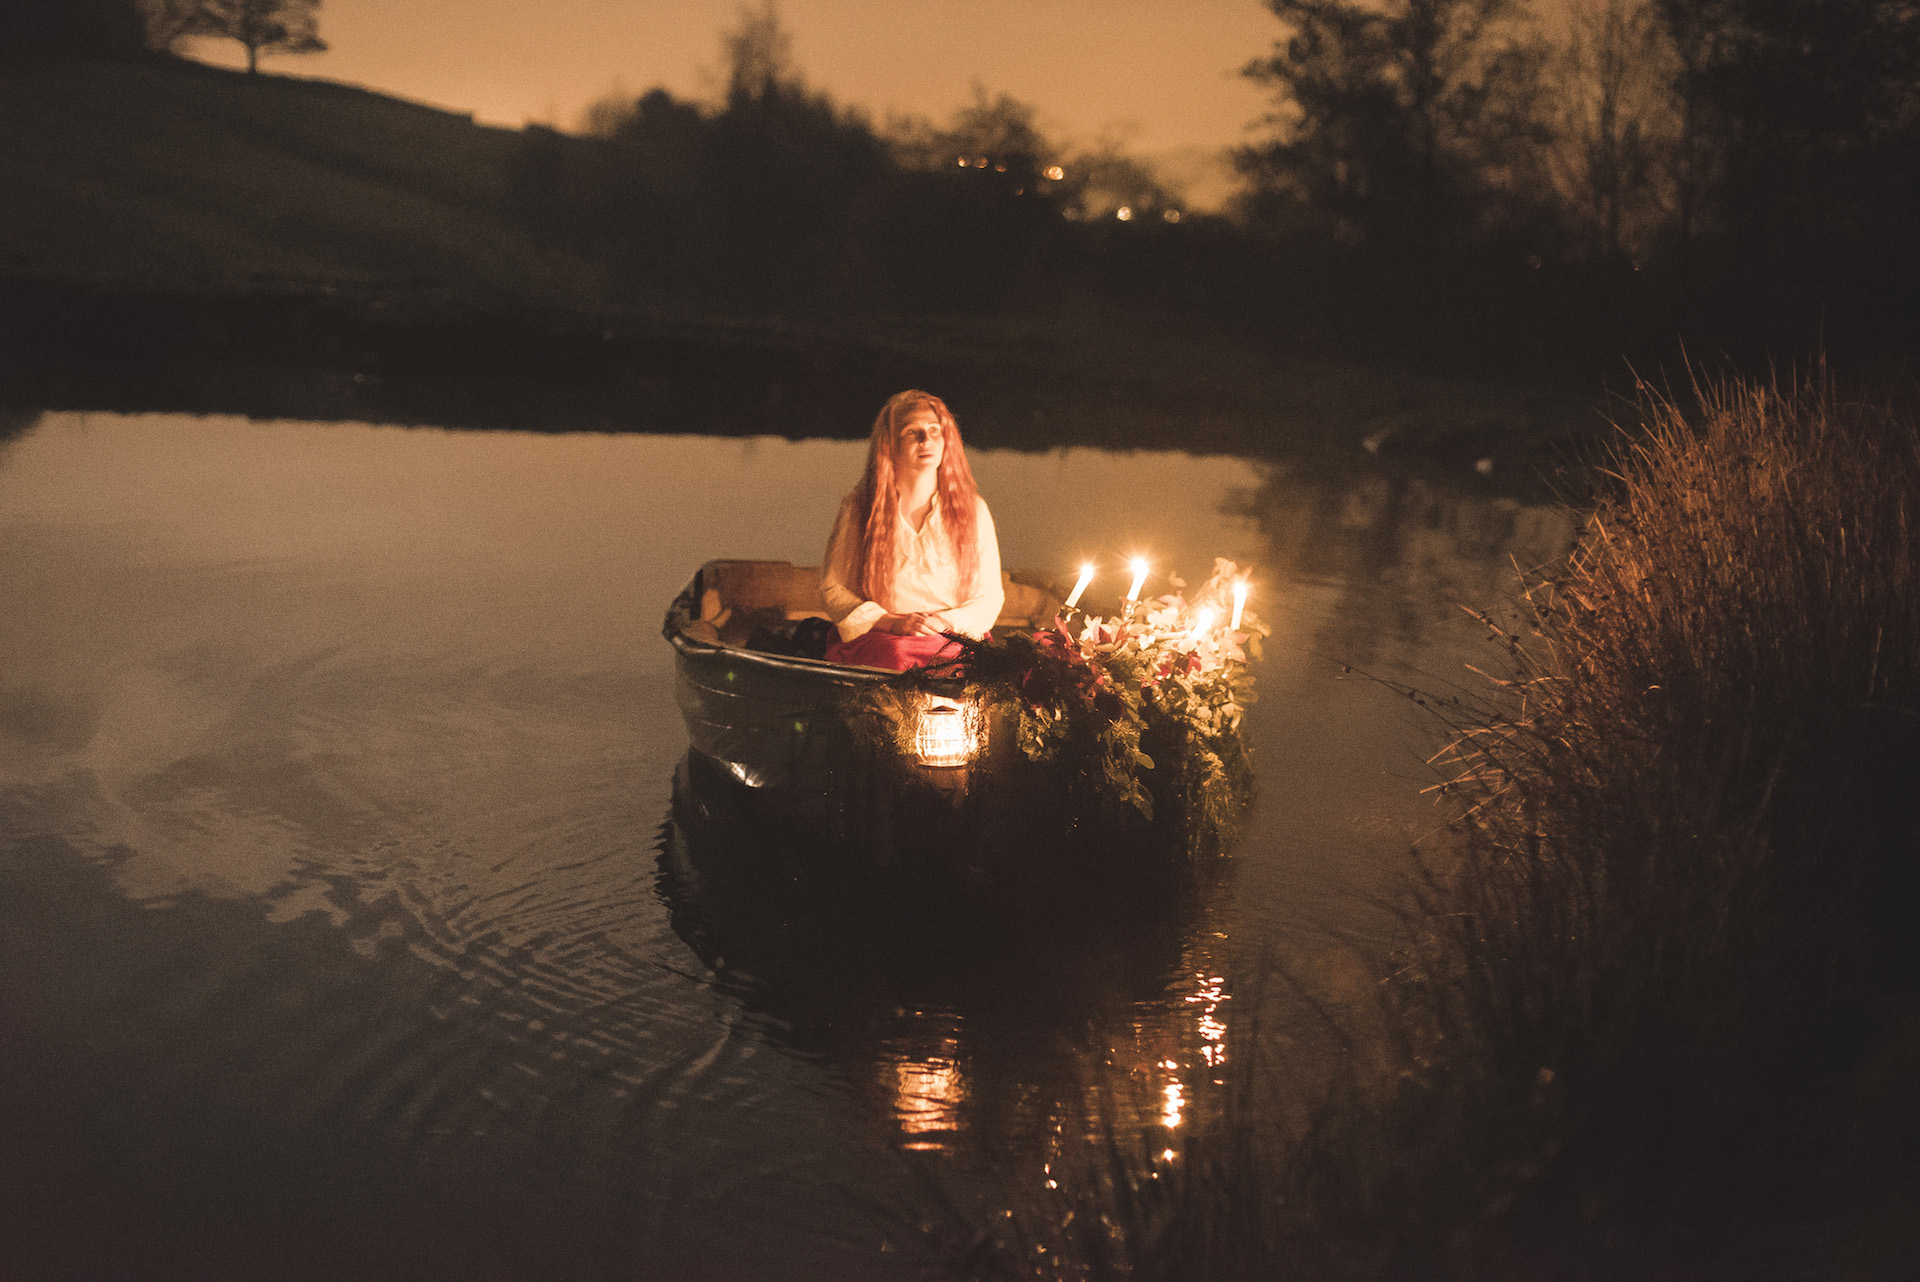 Lady of Shalott - Night glow